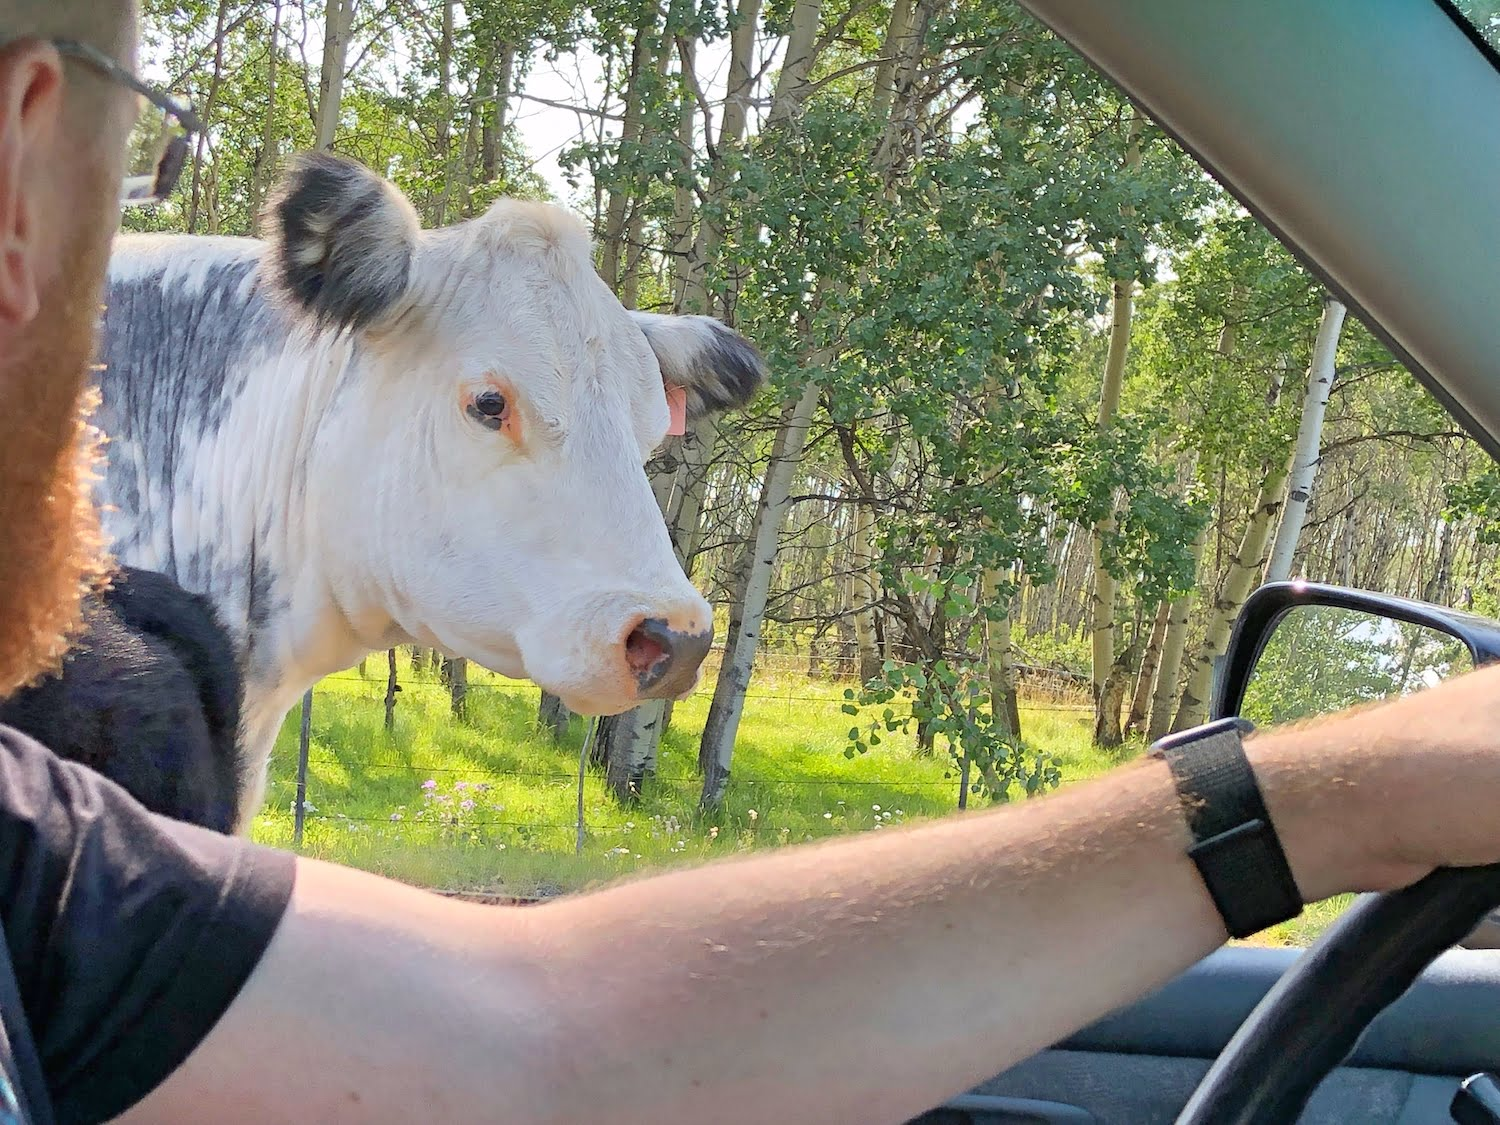 Driving Past Cow